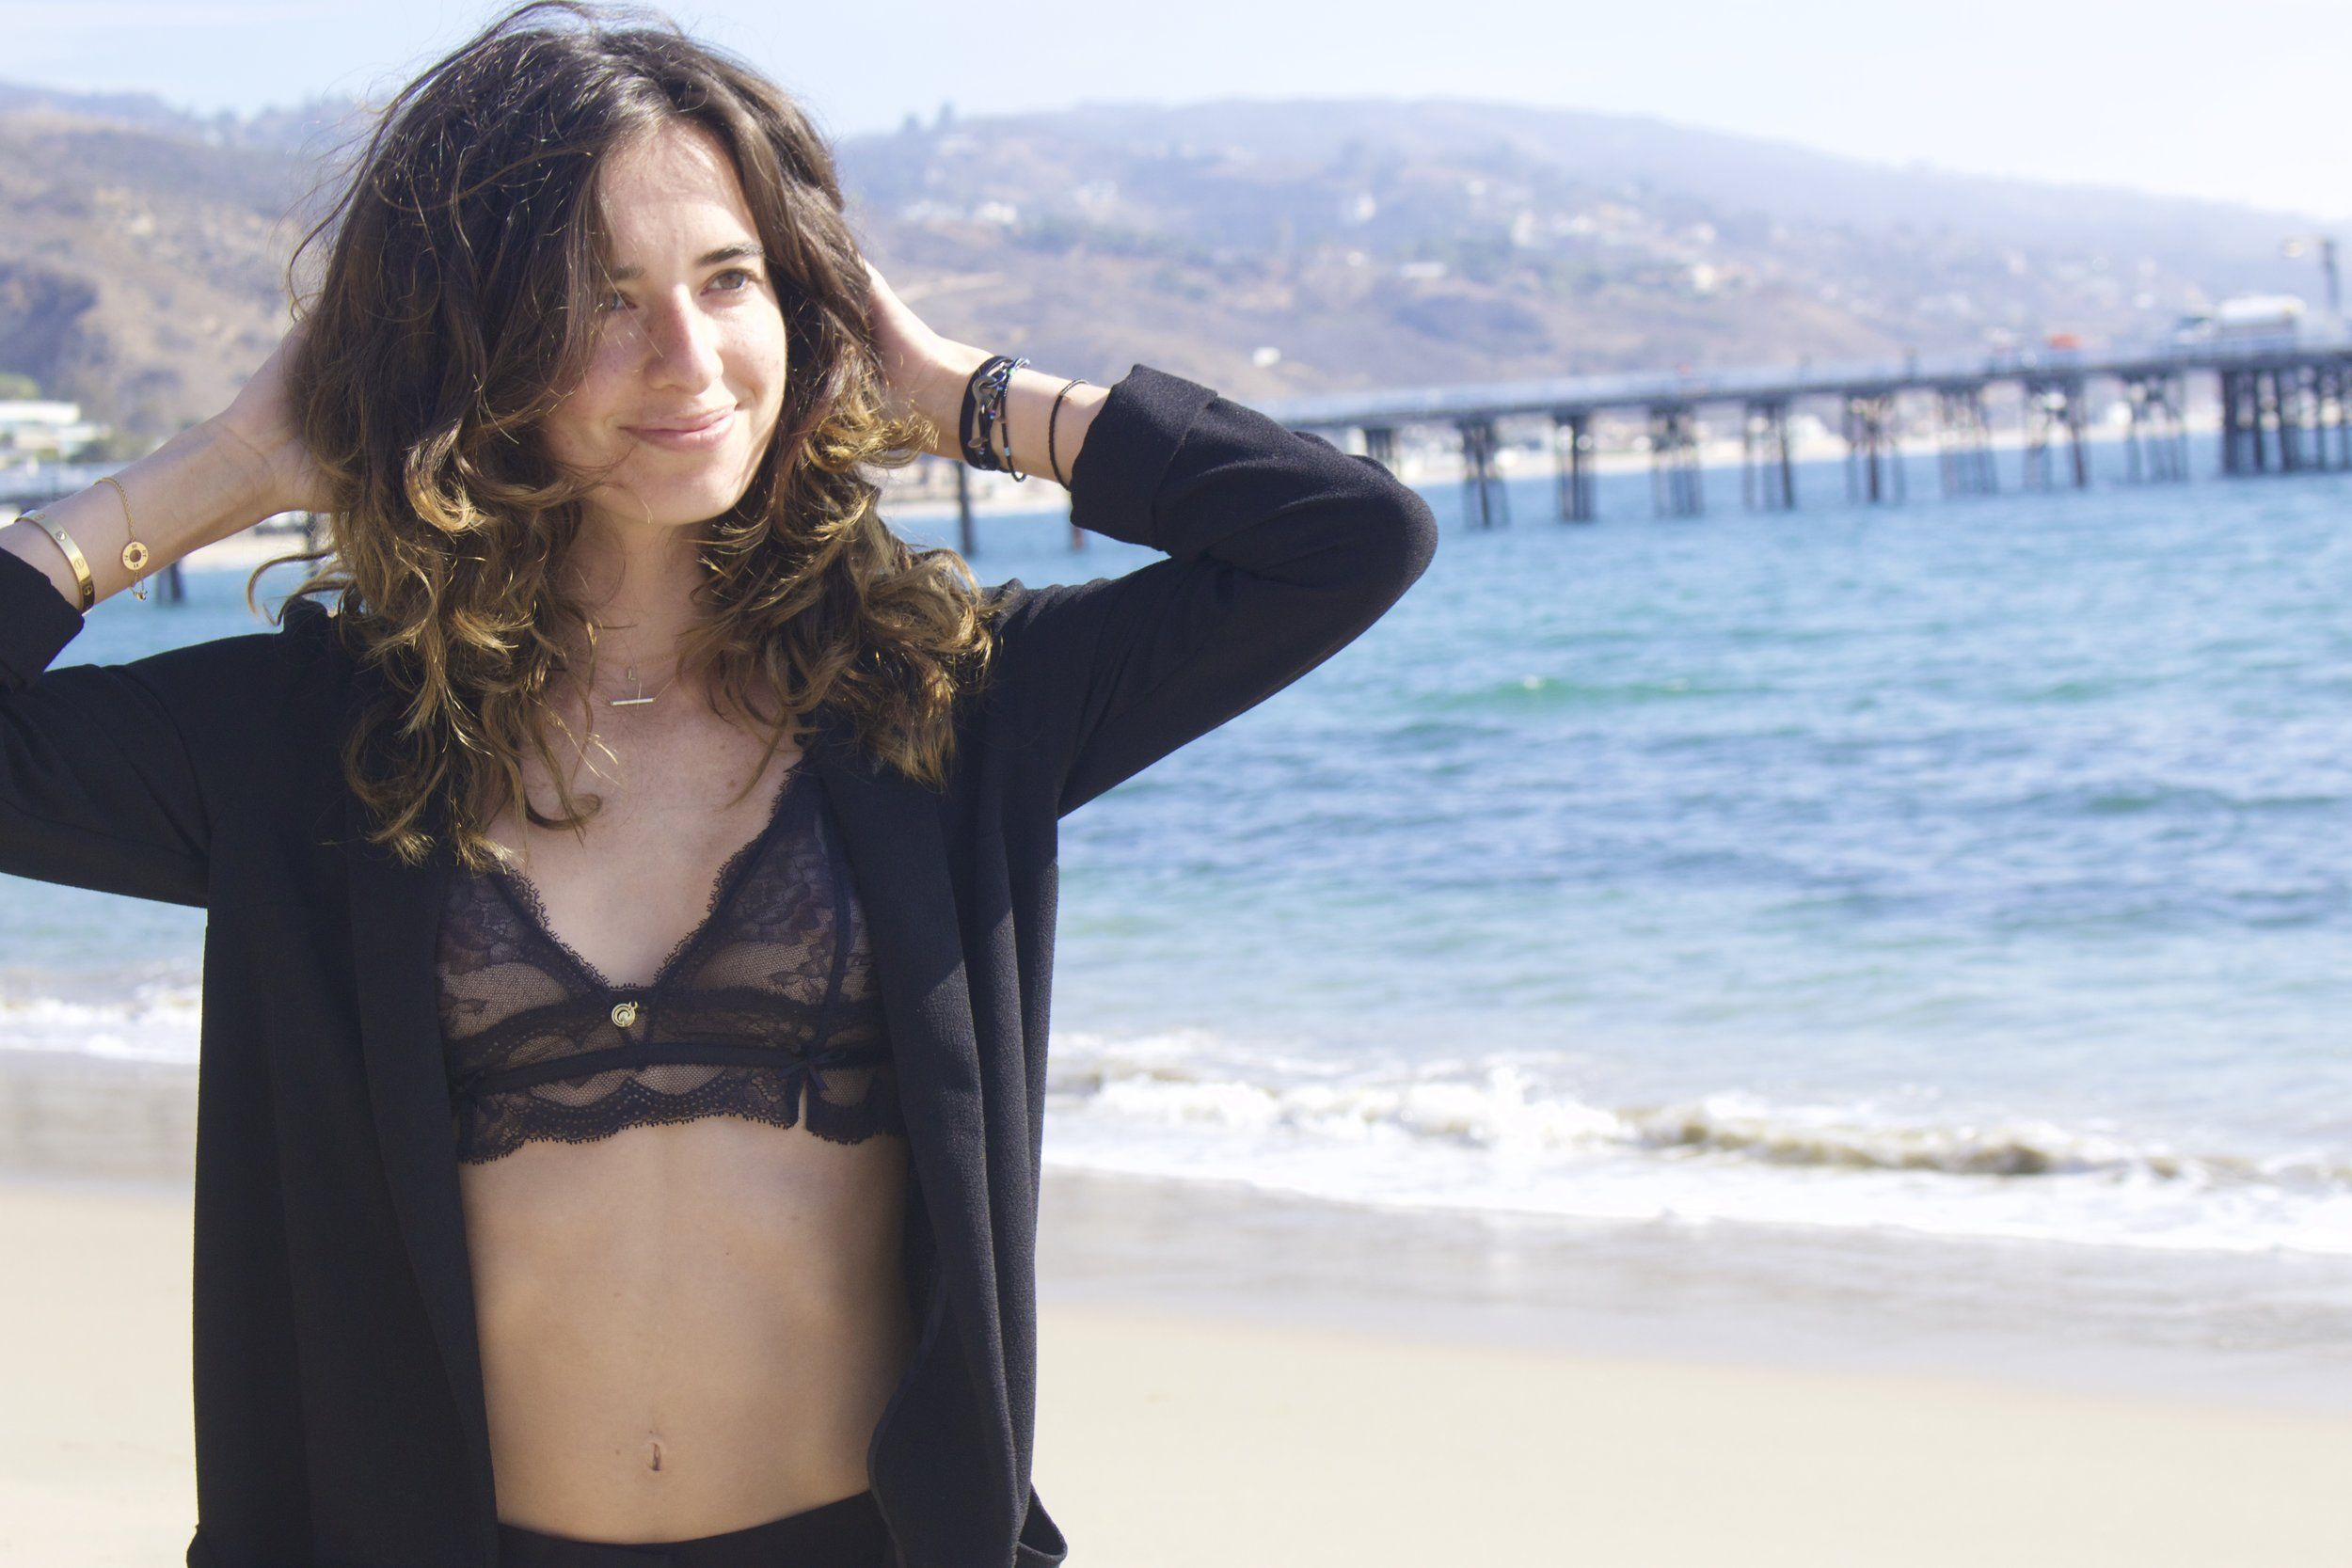 French Lingerie & Malibu Beaches